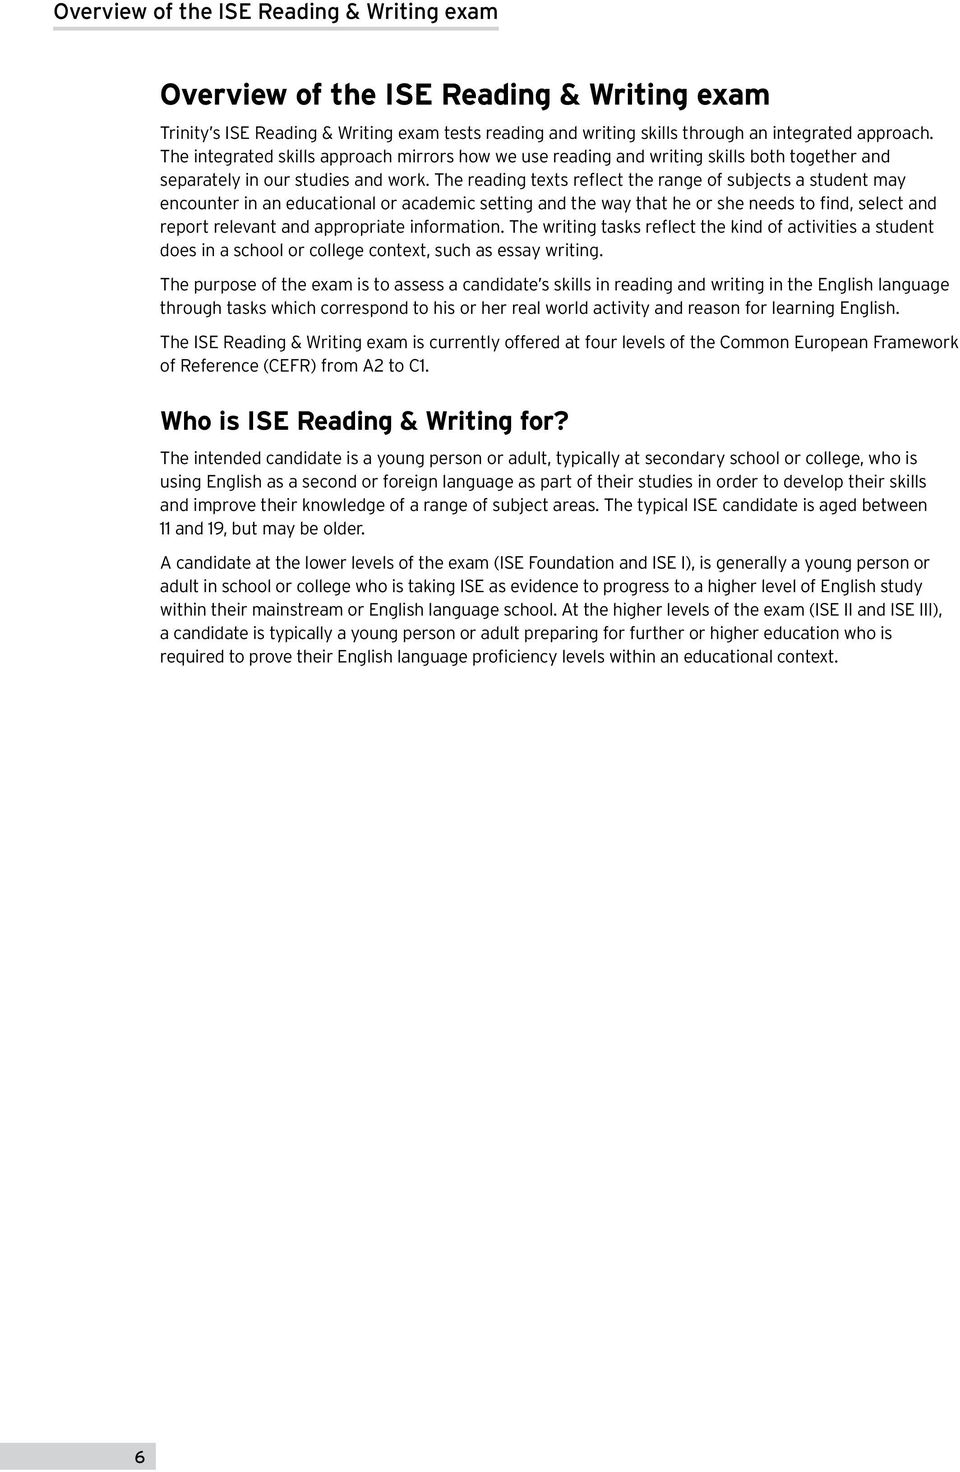 integrated skills in english ise guide for teachers ise ii b the reading texts reflect the range of subjects a student encounter in an educational or